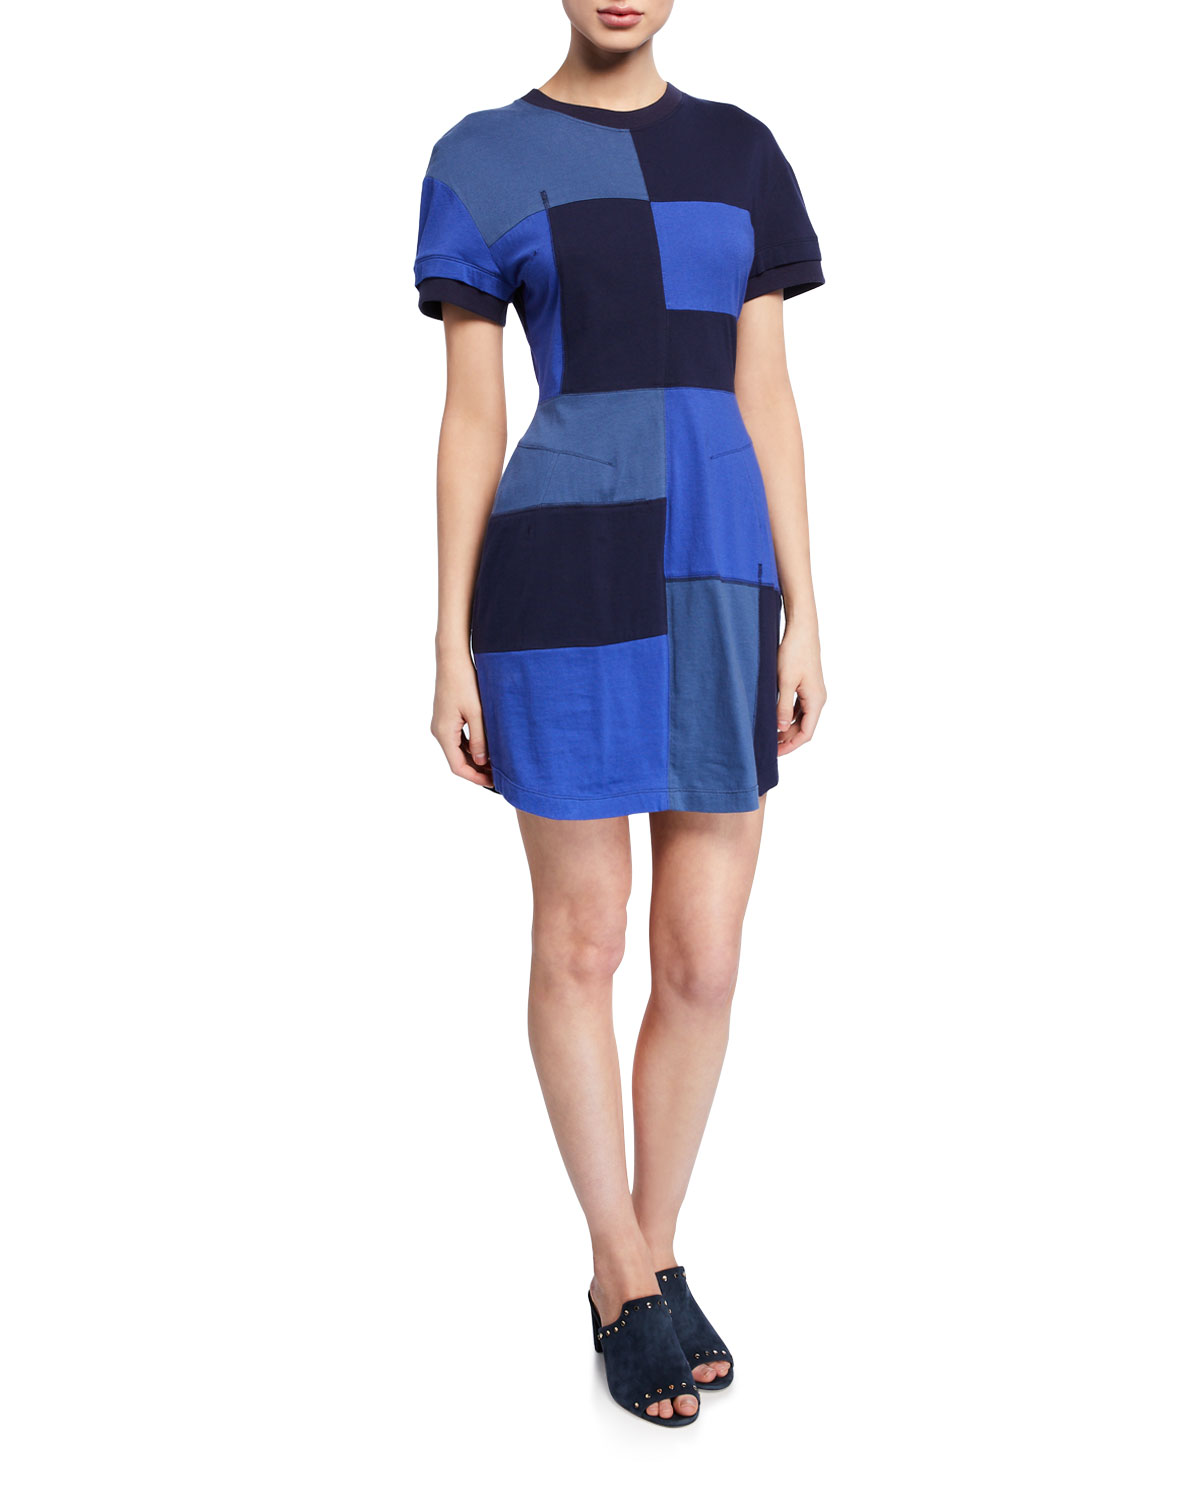 Derek Lam 10 Crosby Dresses PATCHWORK SHORT-SLEEVE T-SHIRT DRESS